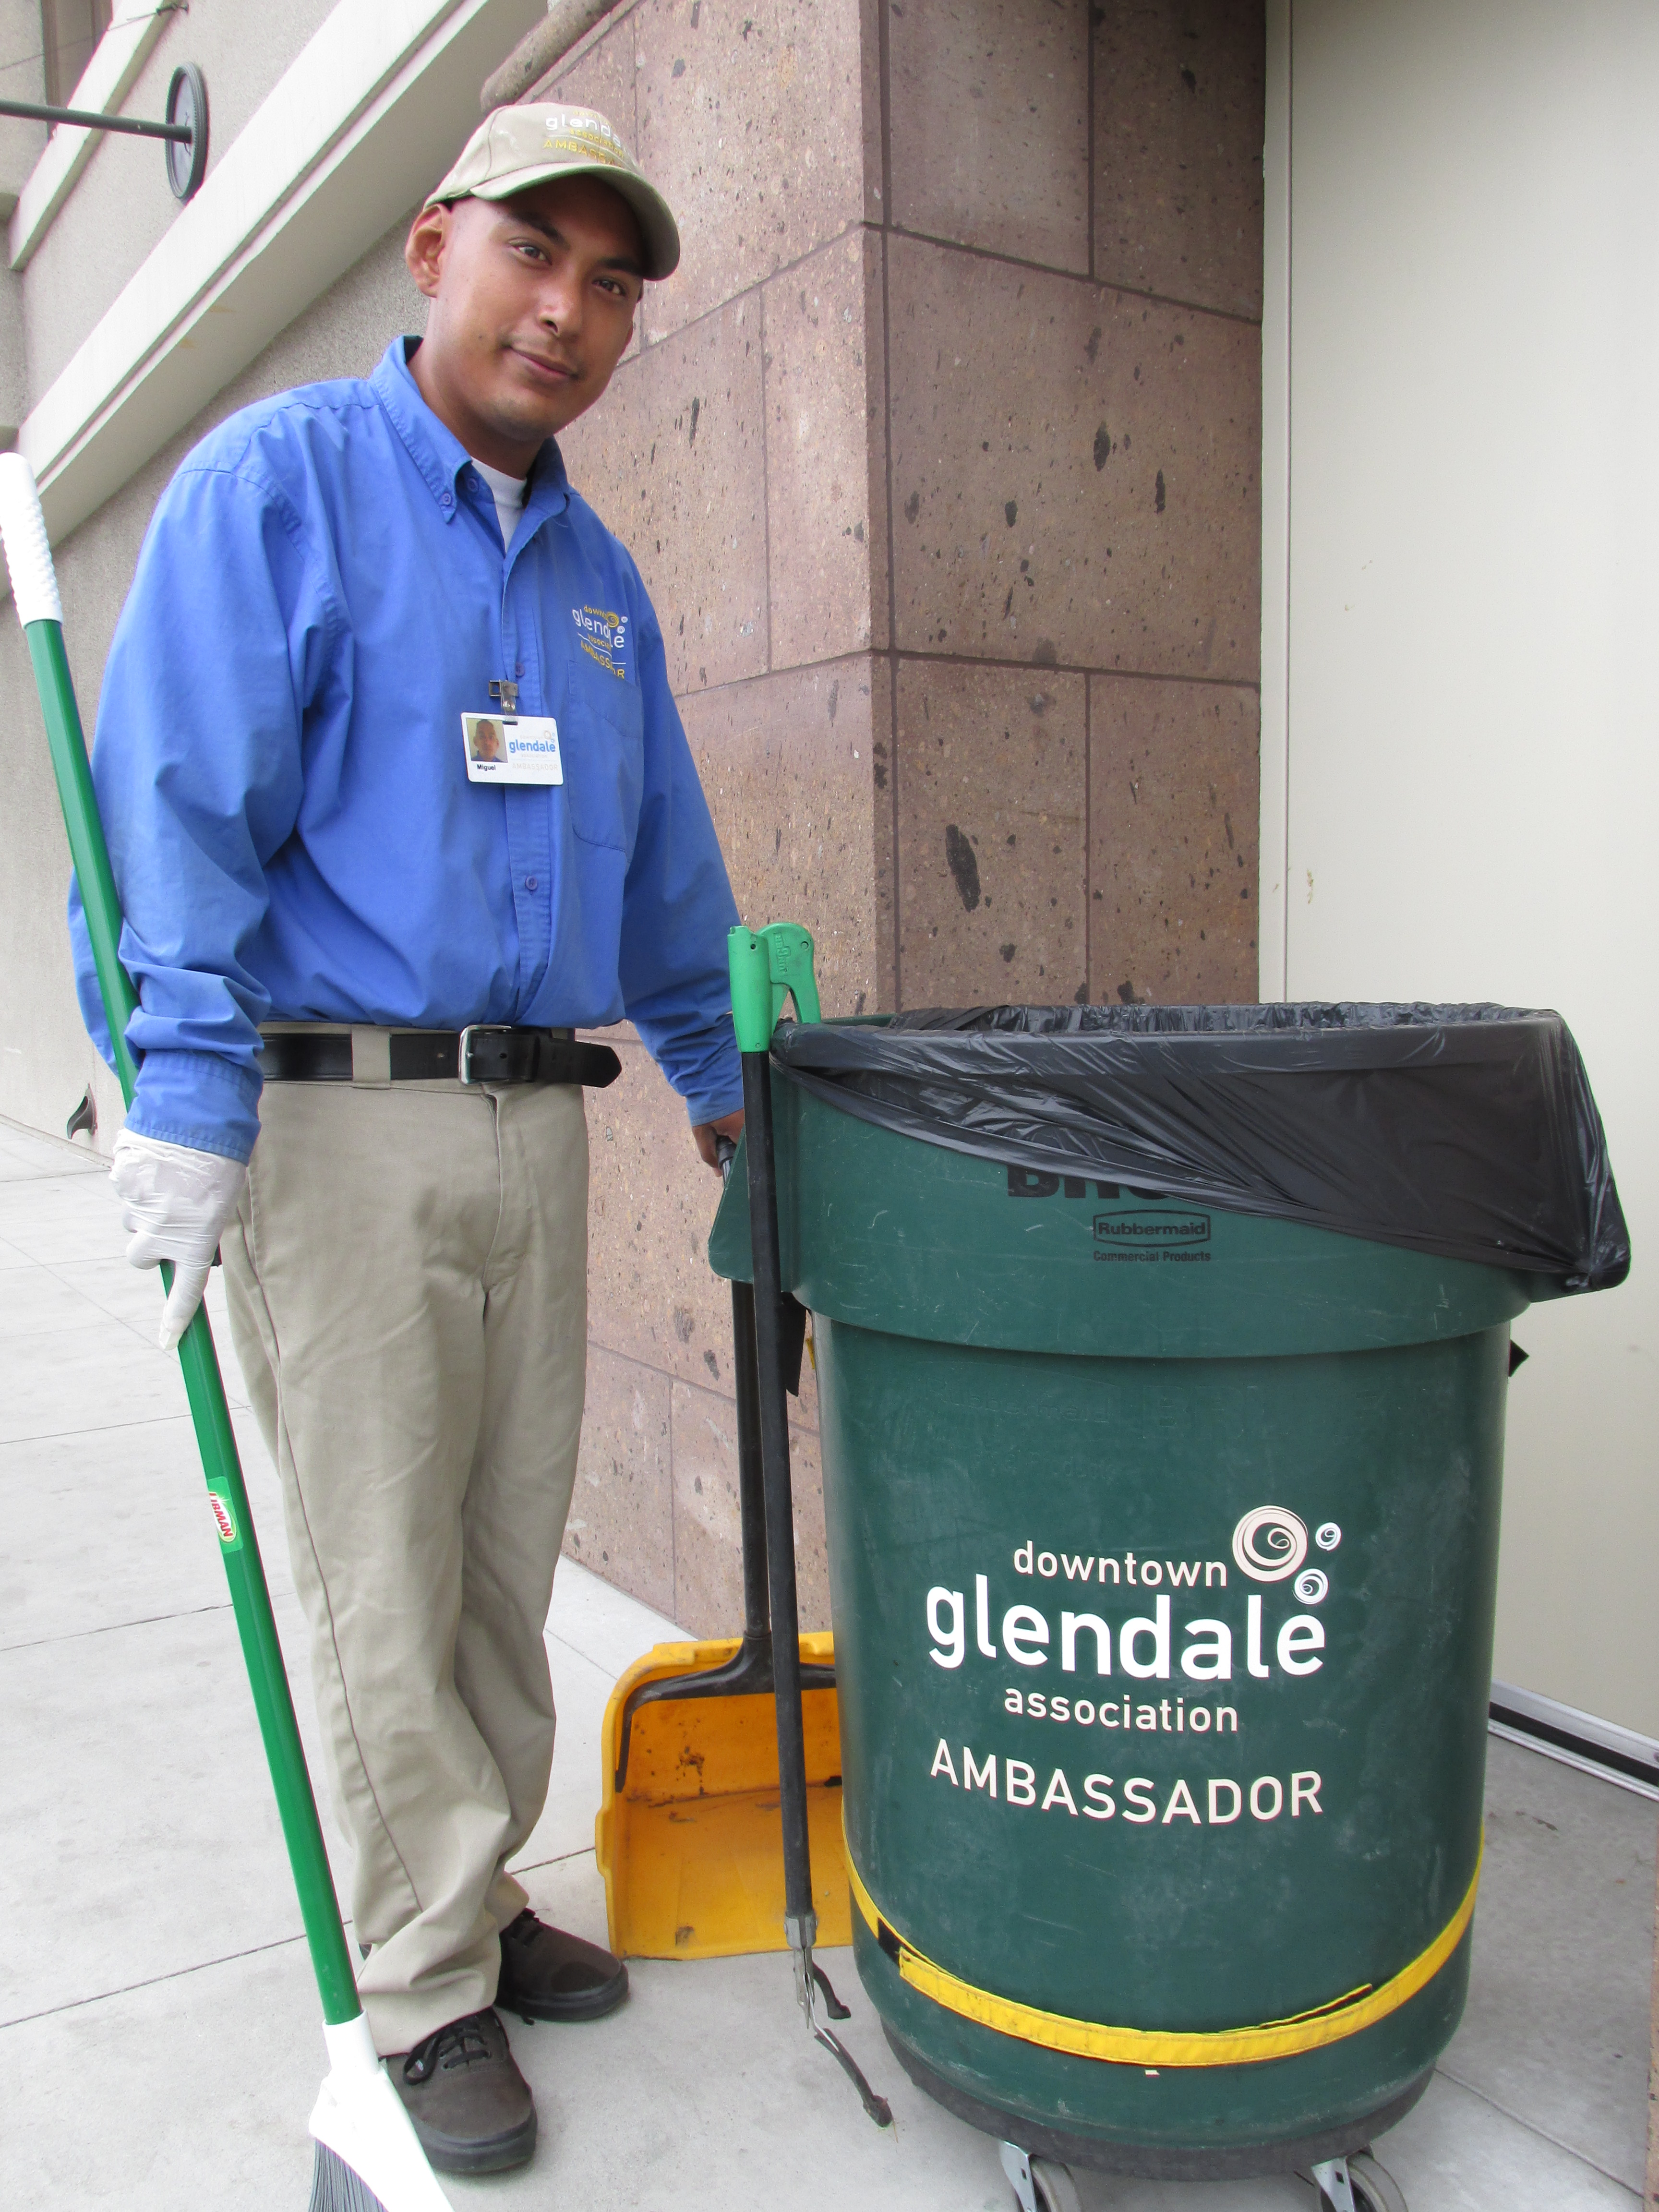 Miguel Reza on the job in Downtown Glendale